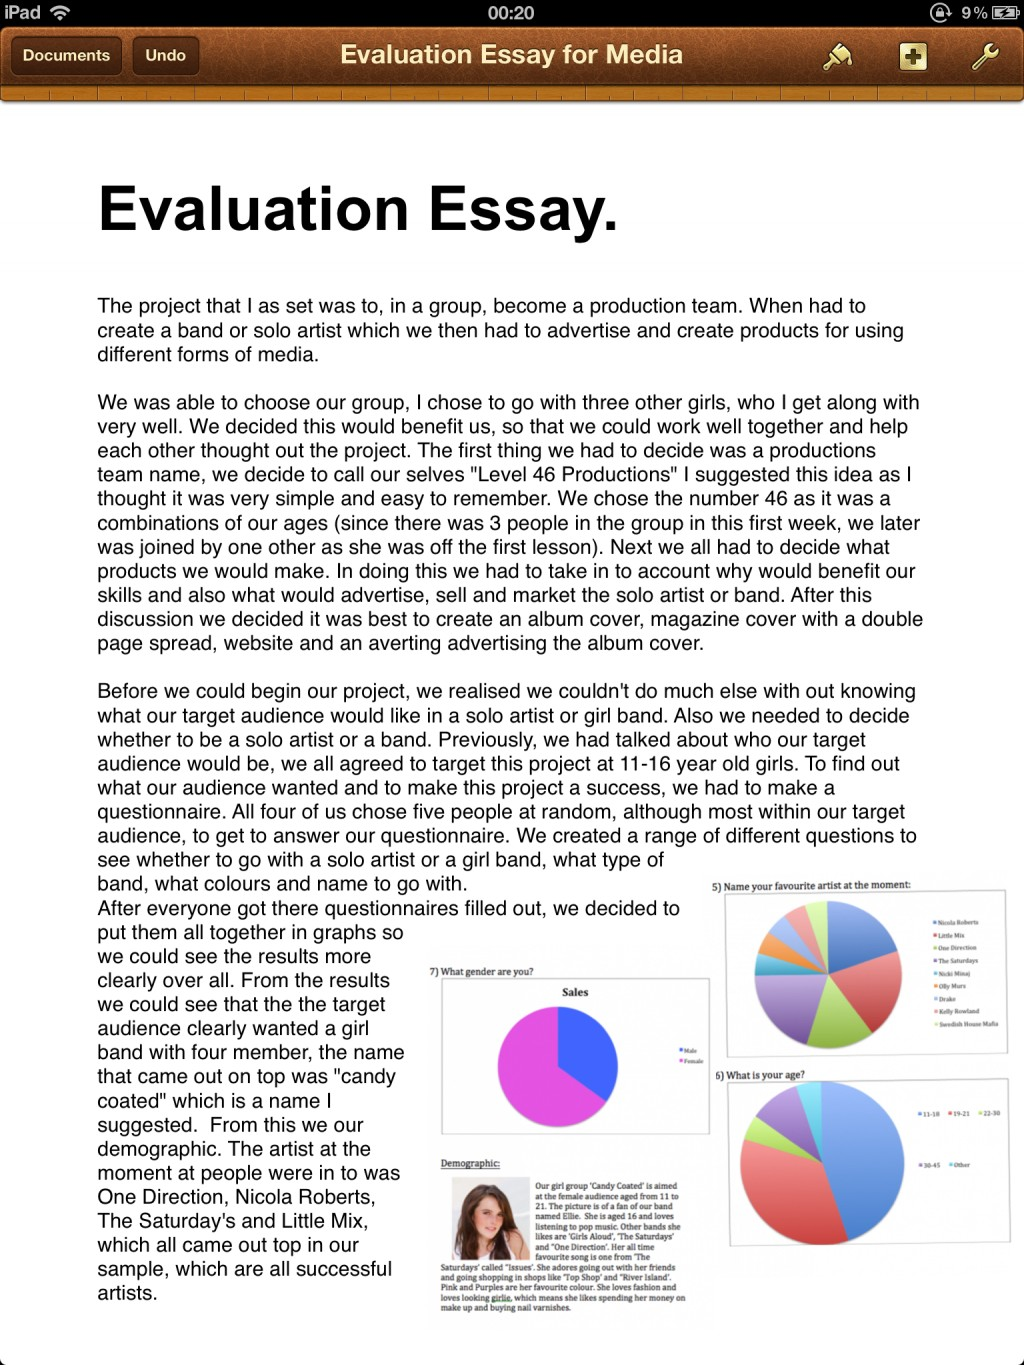 010 Pg Essay Example Incredible Evaluation Unique Topics On Horror Movies Definition Large